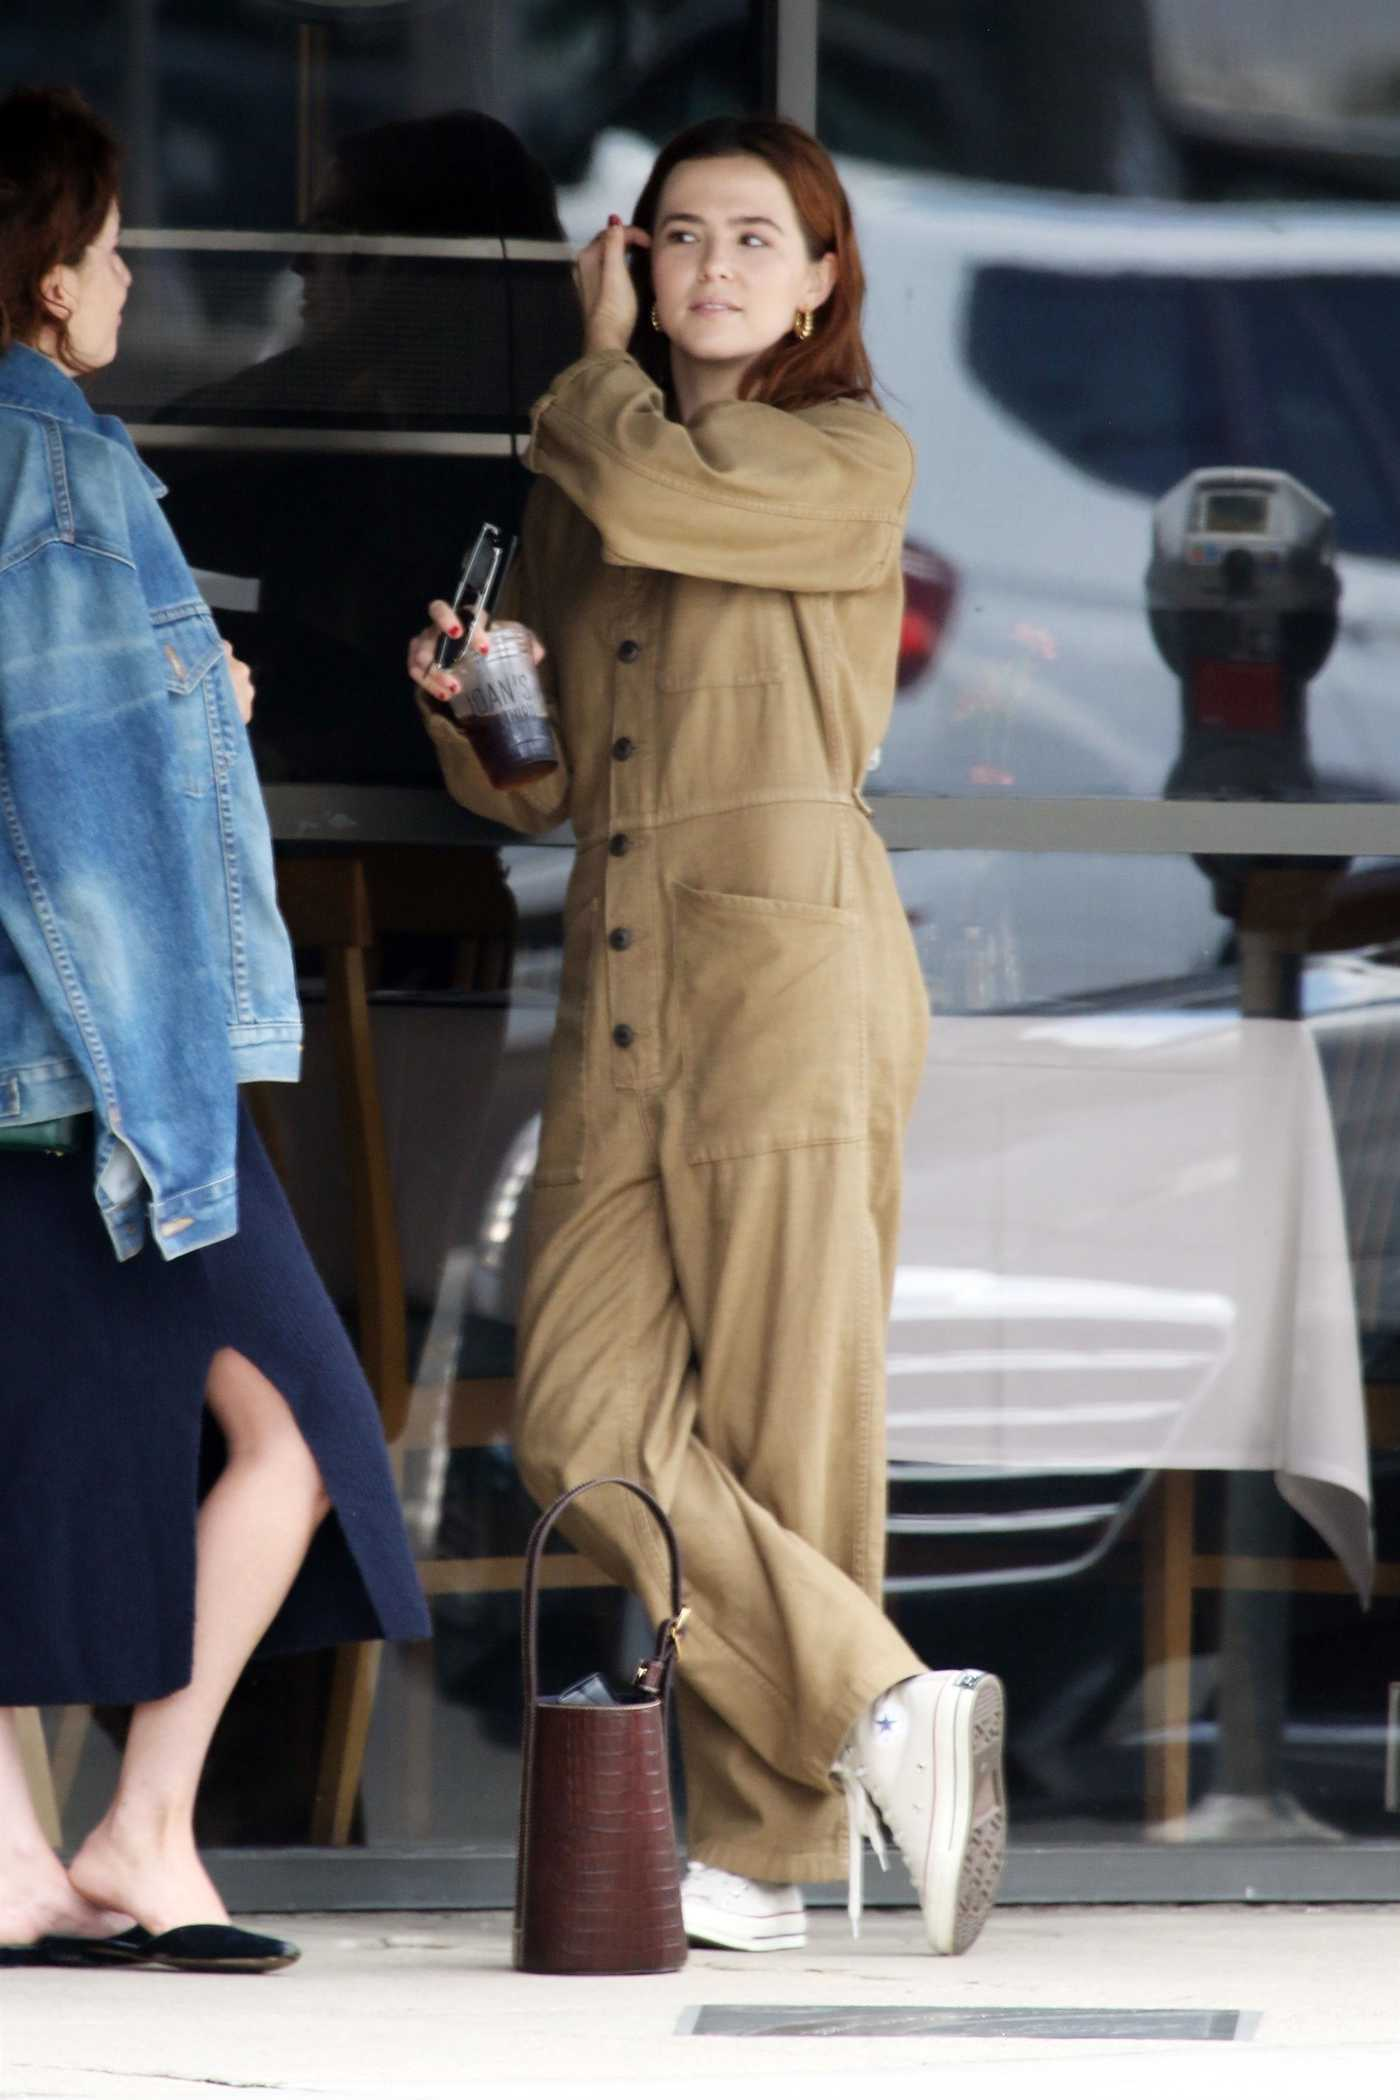 Zoey Deutch in a Beige Overalls Was Seen Out in Los Angeles 10/04/2018